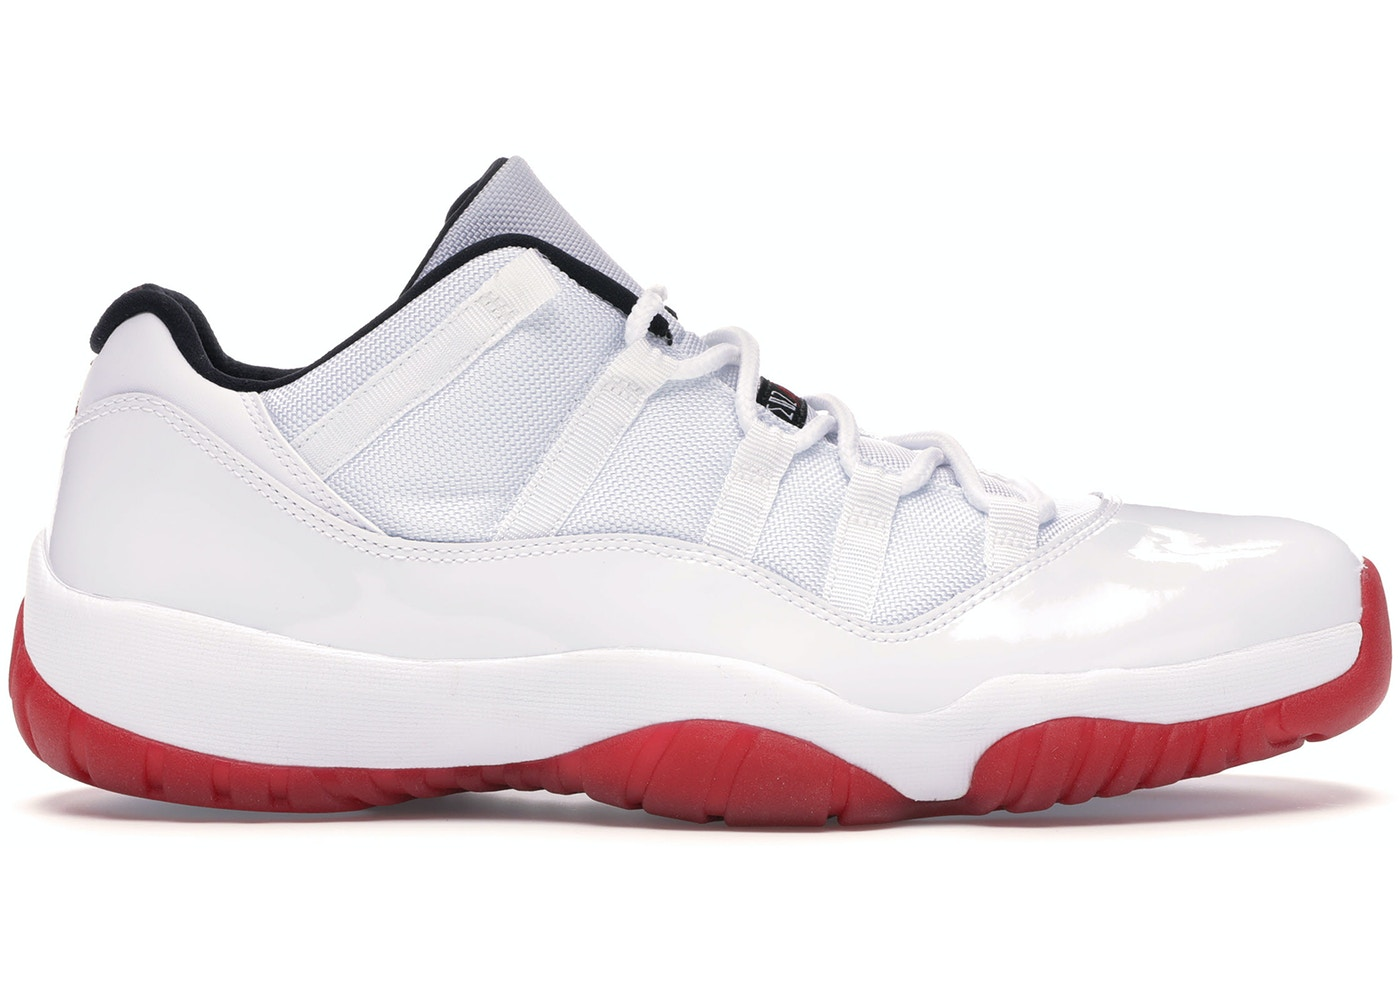 4fff686852da6 Buy Air Jordan 11 Size 17 Shoes & Deadstock Sneakers